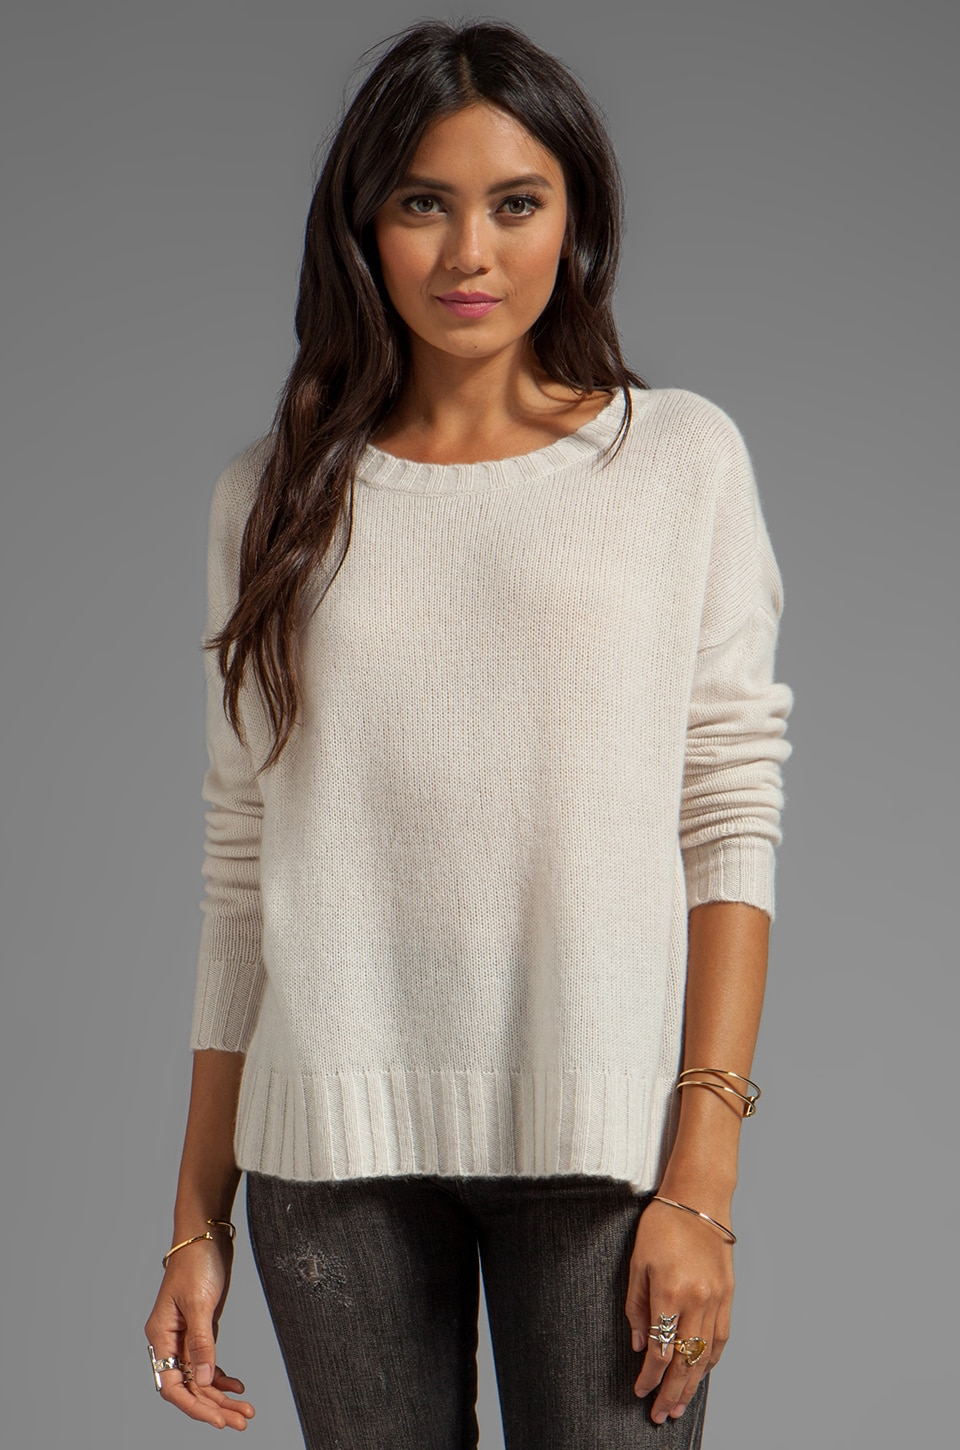 360 Sweater Edie Cashmere Pullover in Chalk